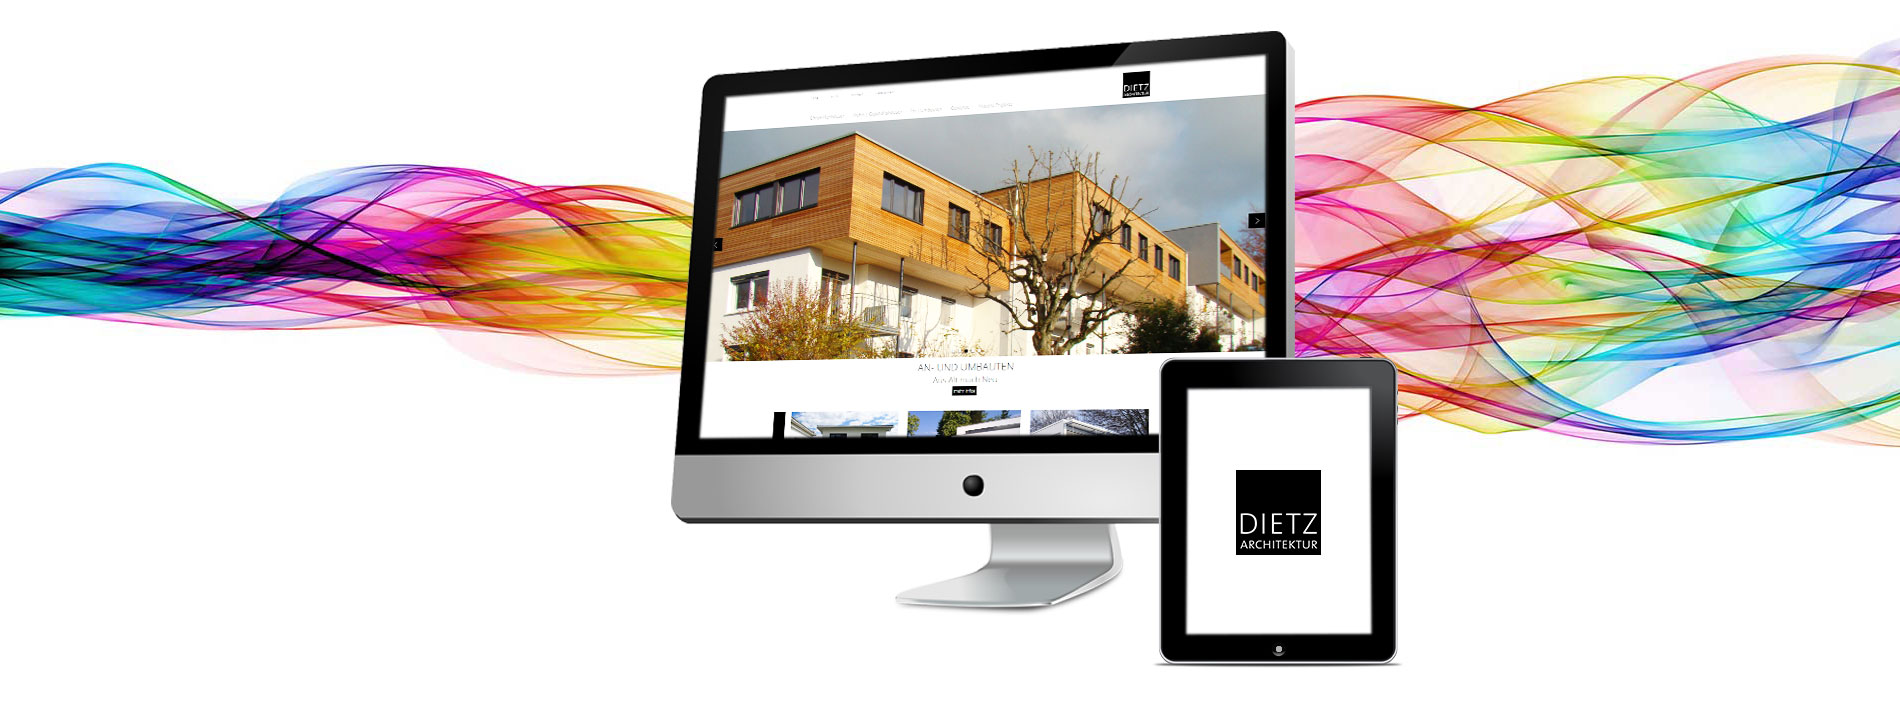 Webdesign-Relaunch mit Wordpress für die Eventagentur maximize marketing